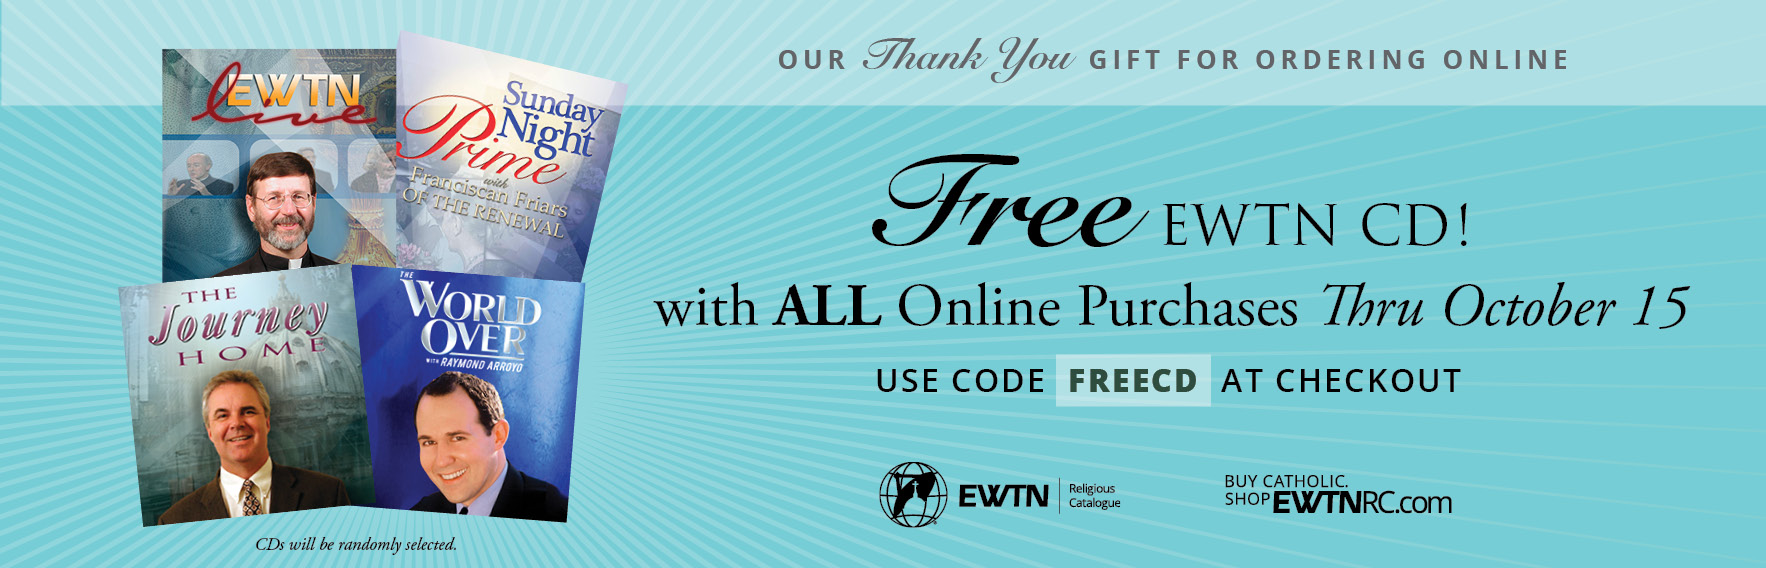 Free EWTN CD with All Online Offers